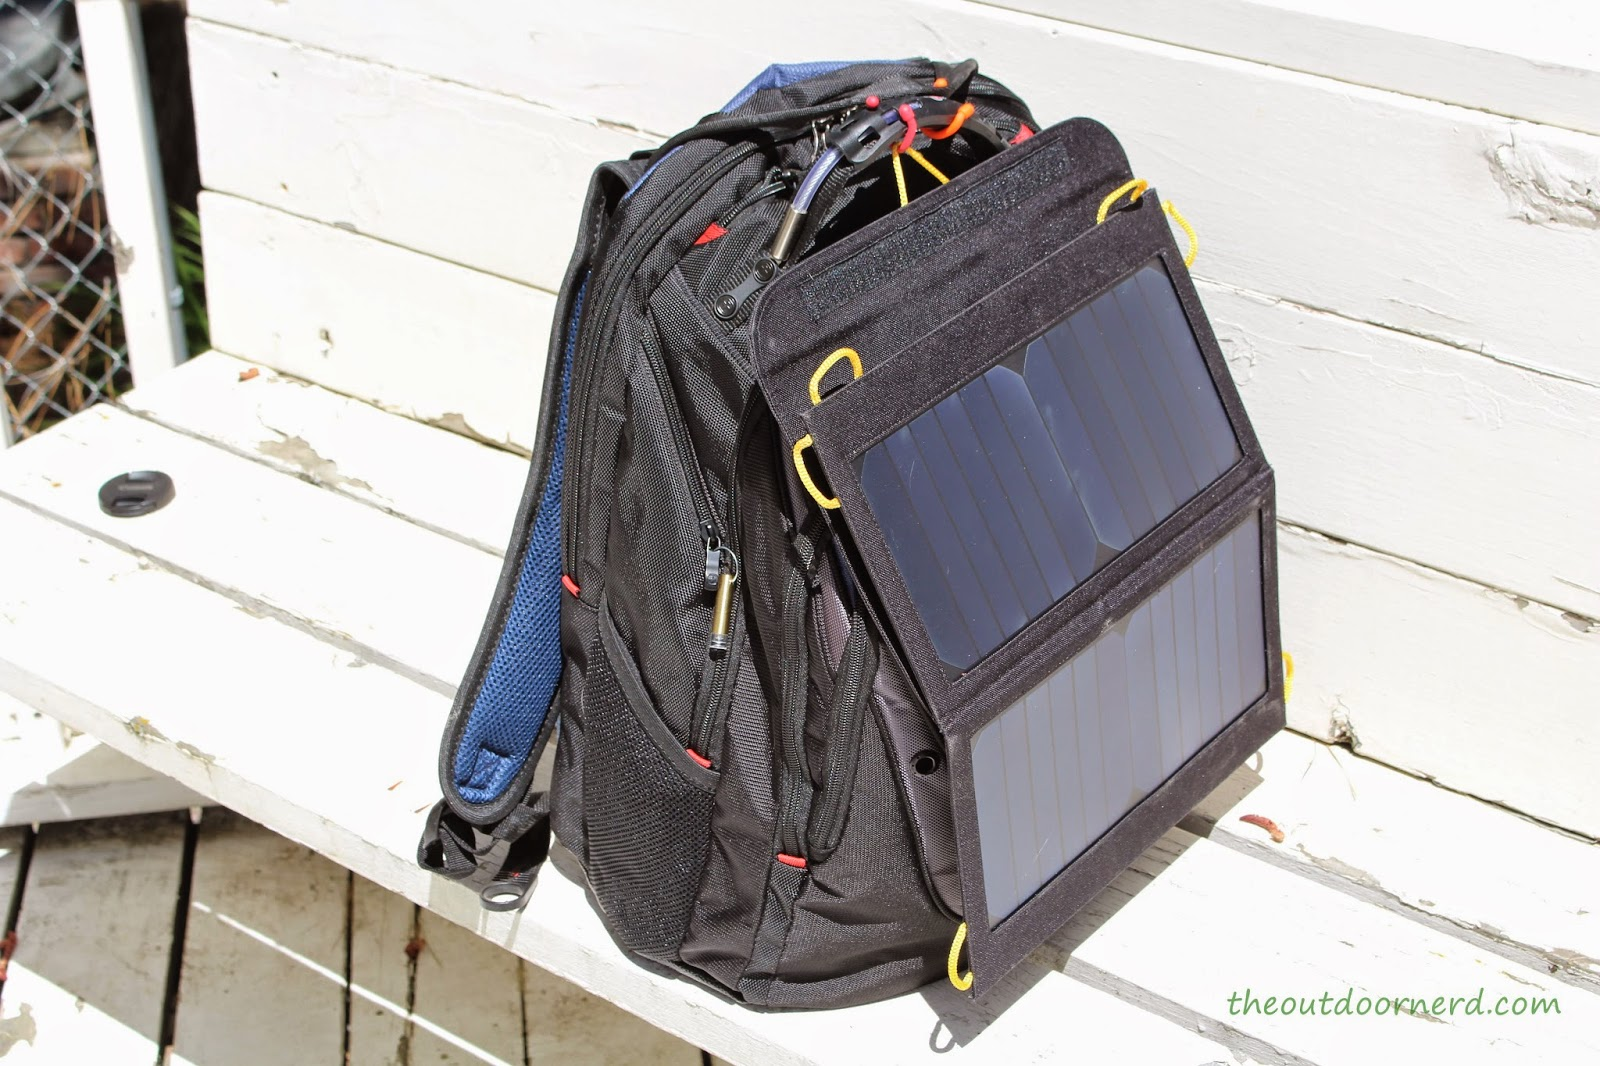 Levin Sol-Wing 13W Solar USB Charger: Attached to SwissGear Backpack